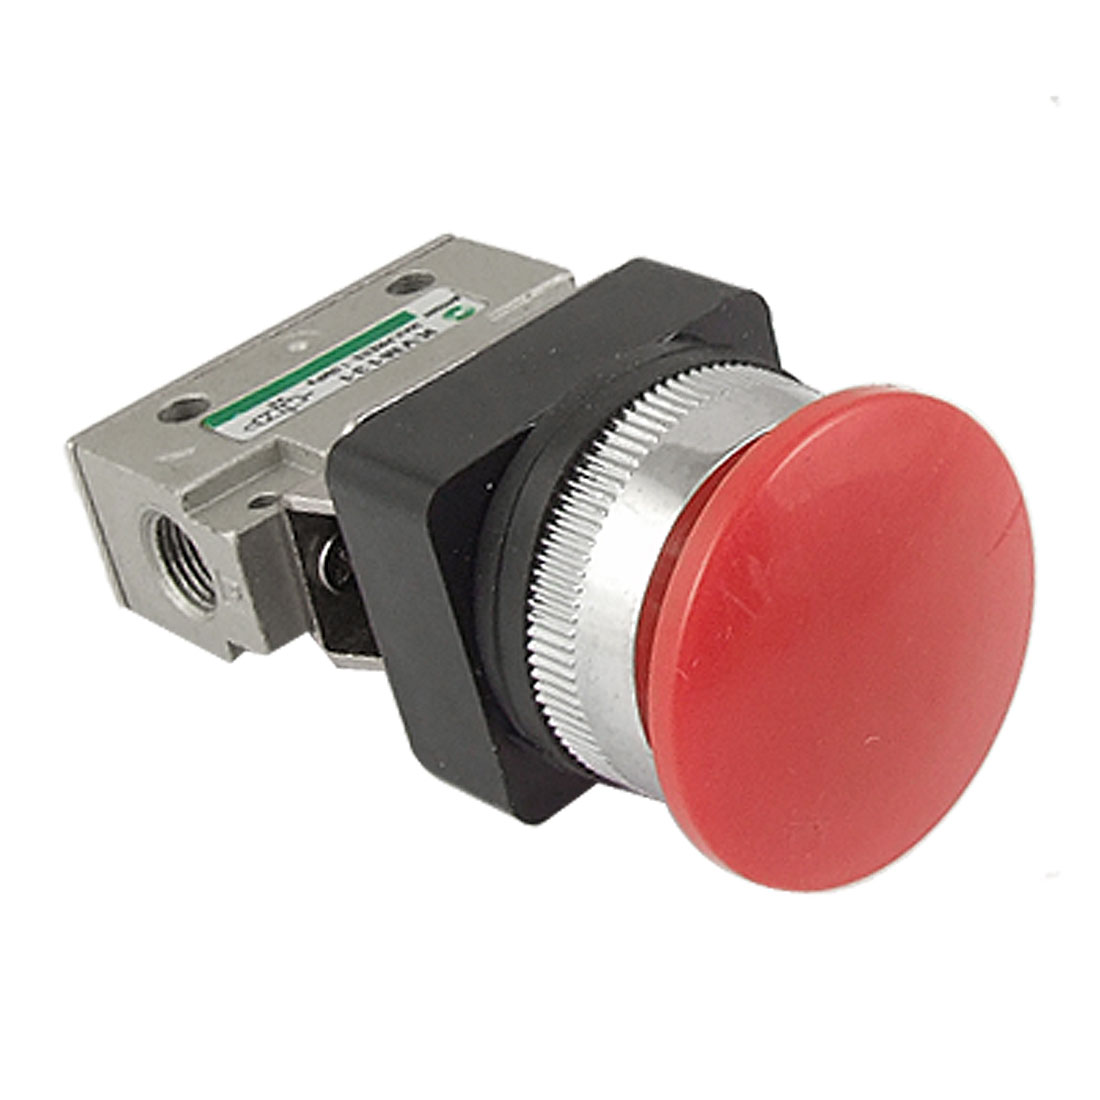 KVM131 2 Position Mushroom Push Button Mechanical Valve